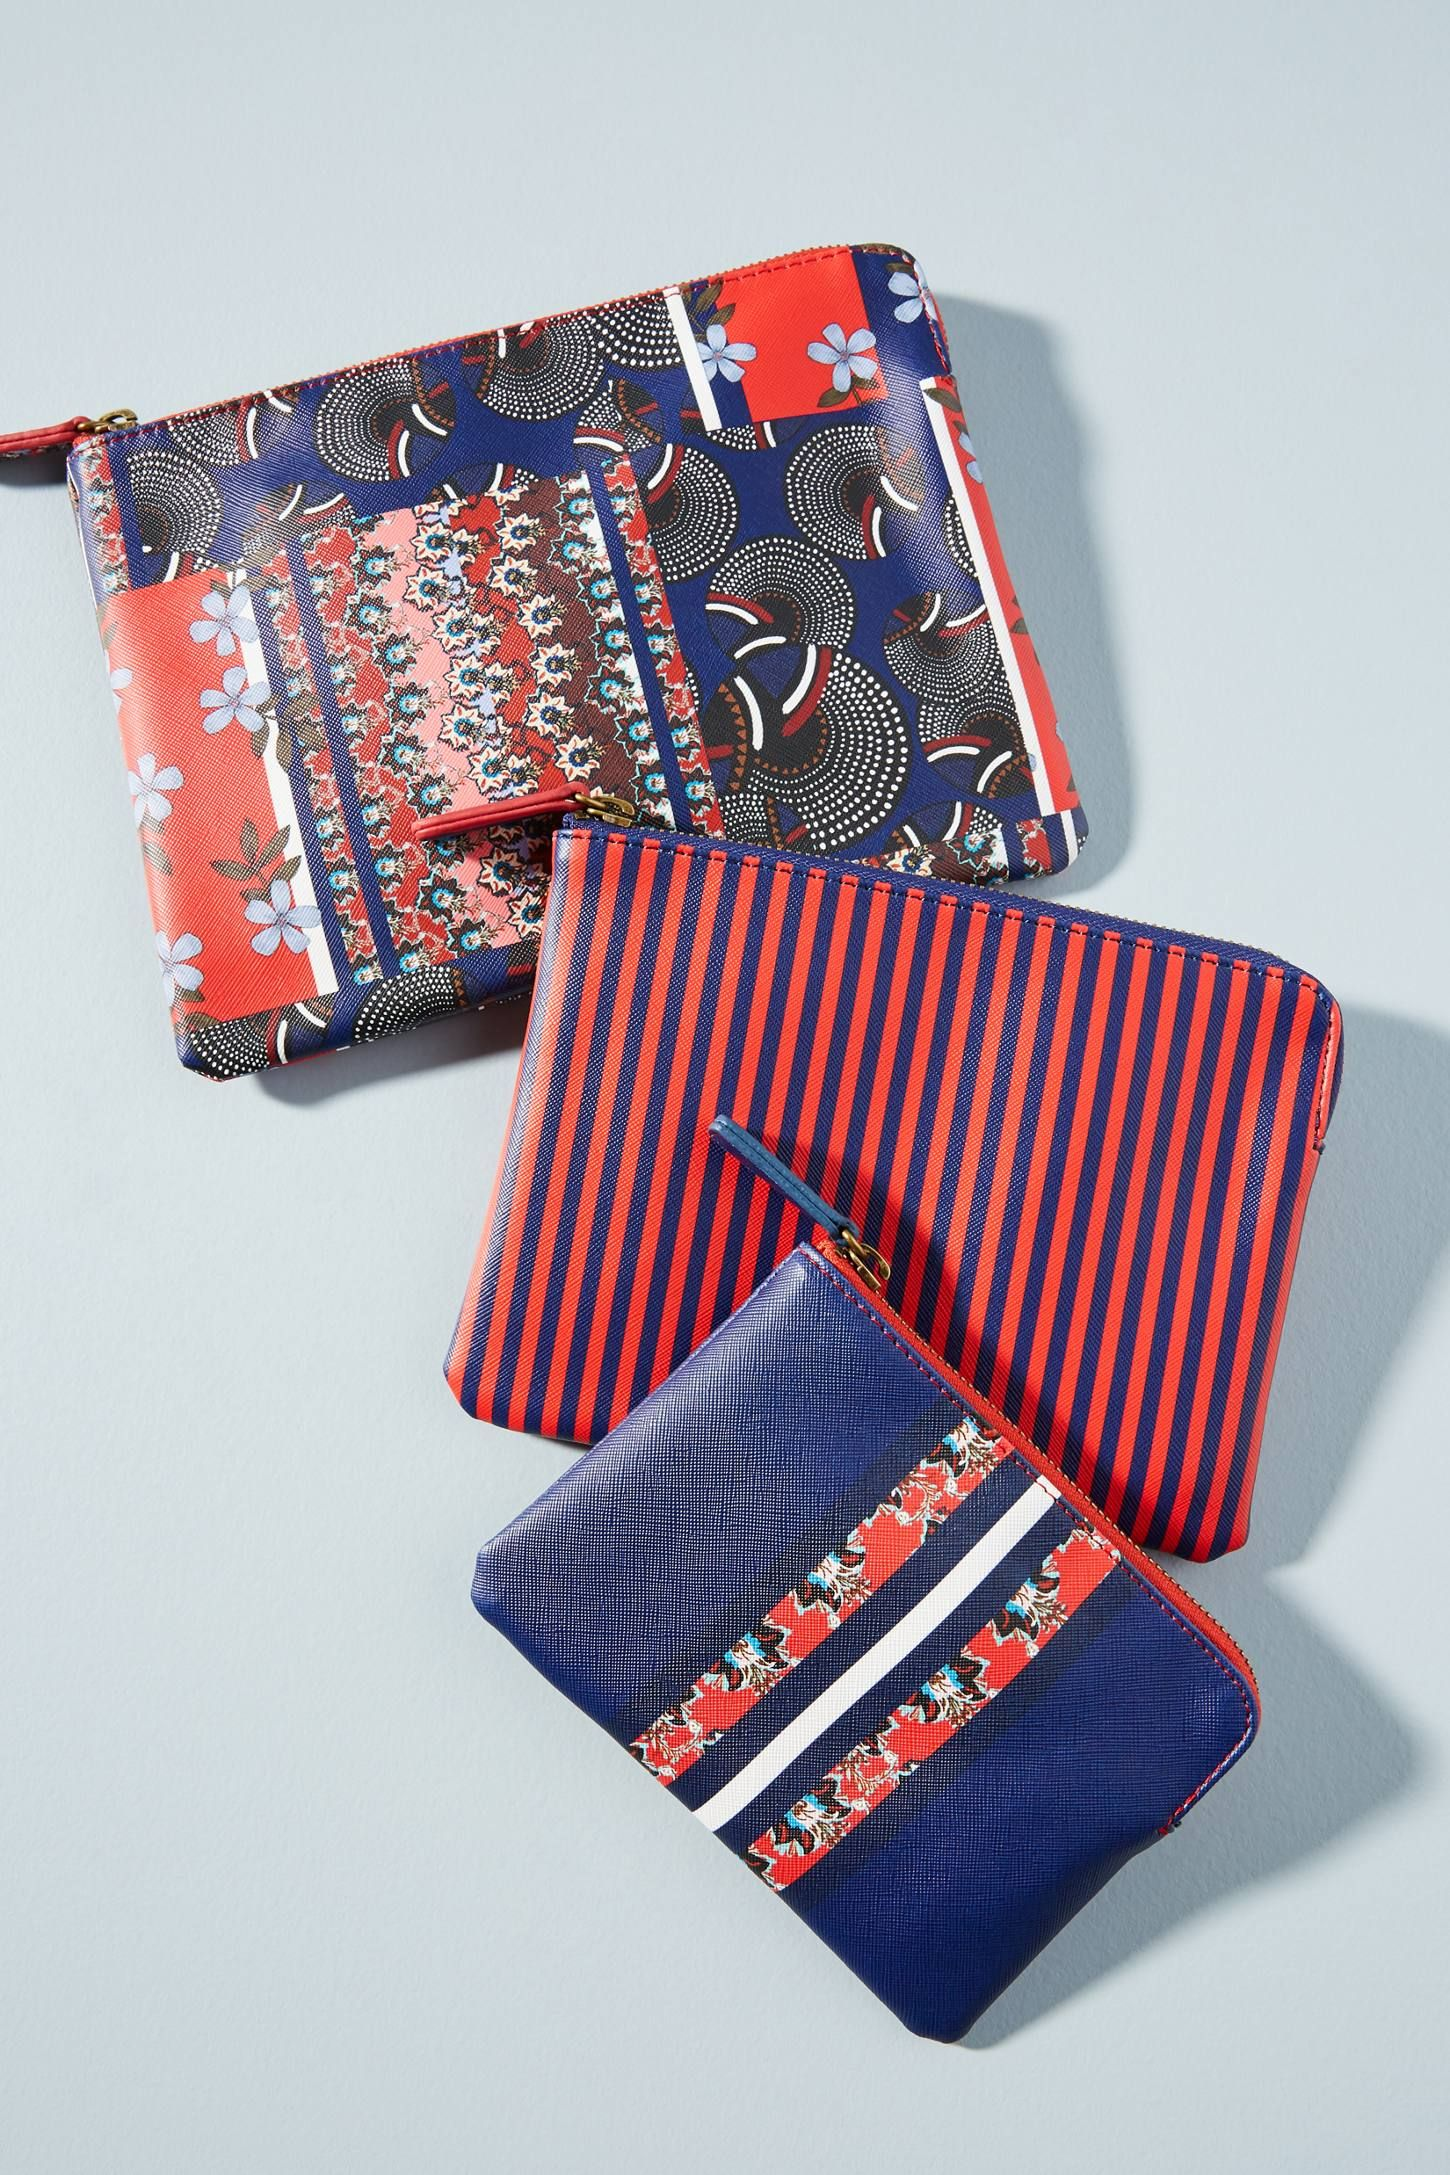 MACKENZIE Anthropologie Holiday Pouch Gift Set - Red Separates ... b77906ac5